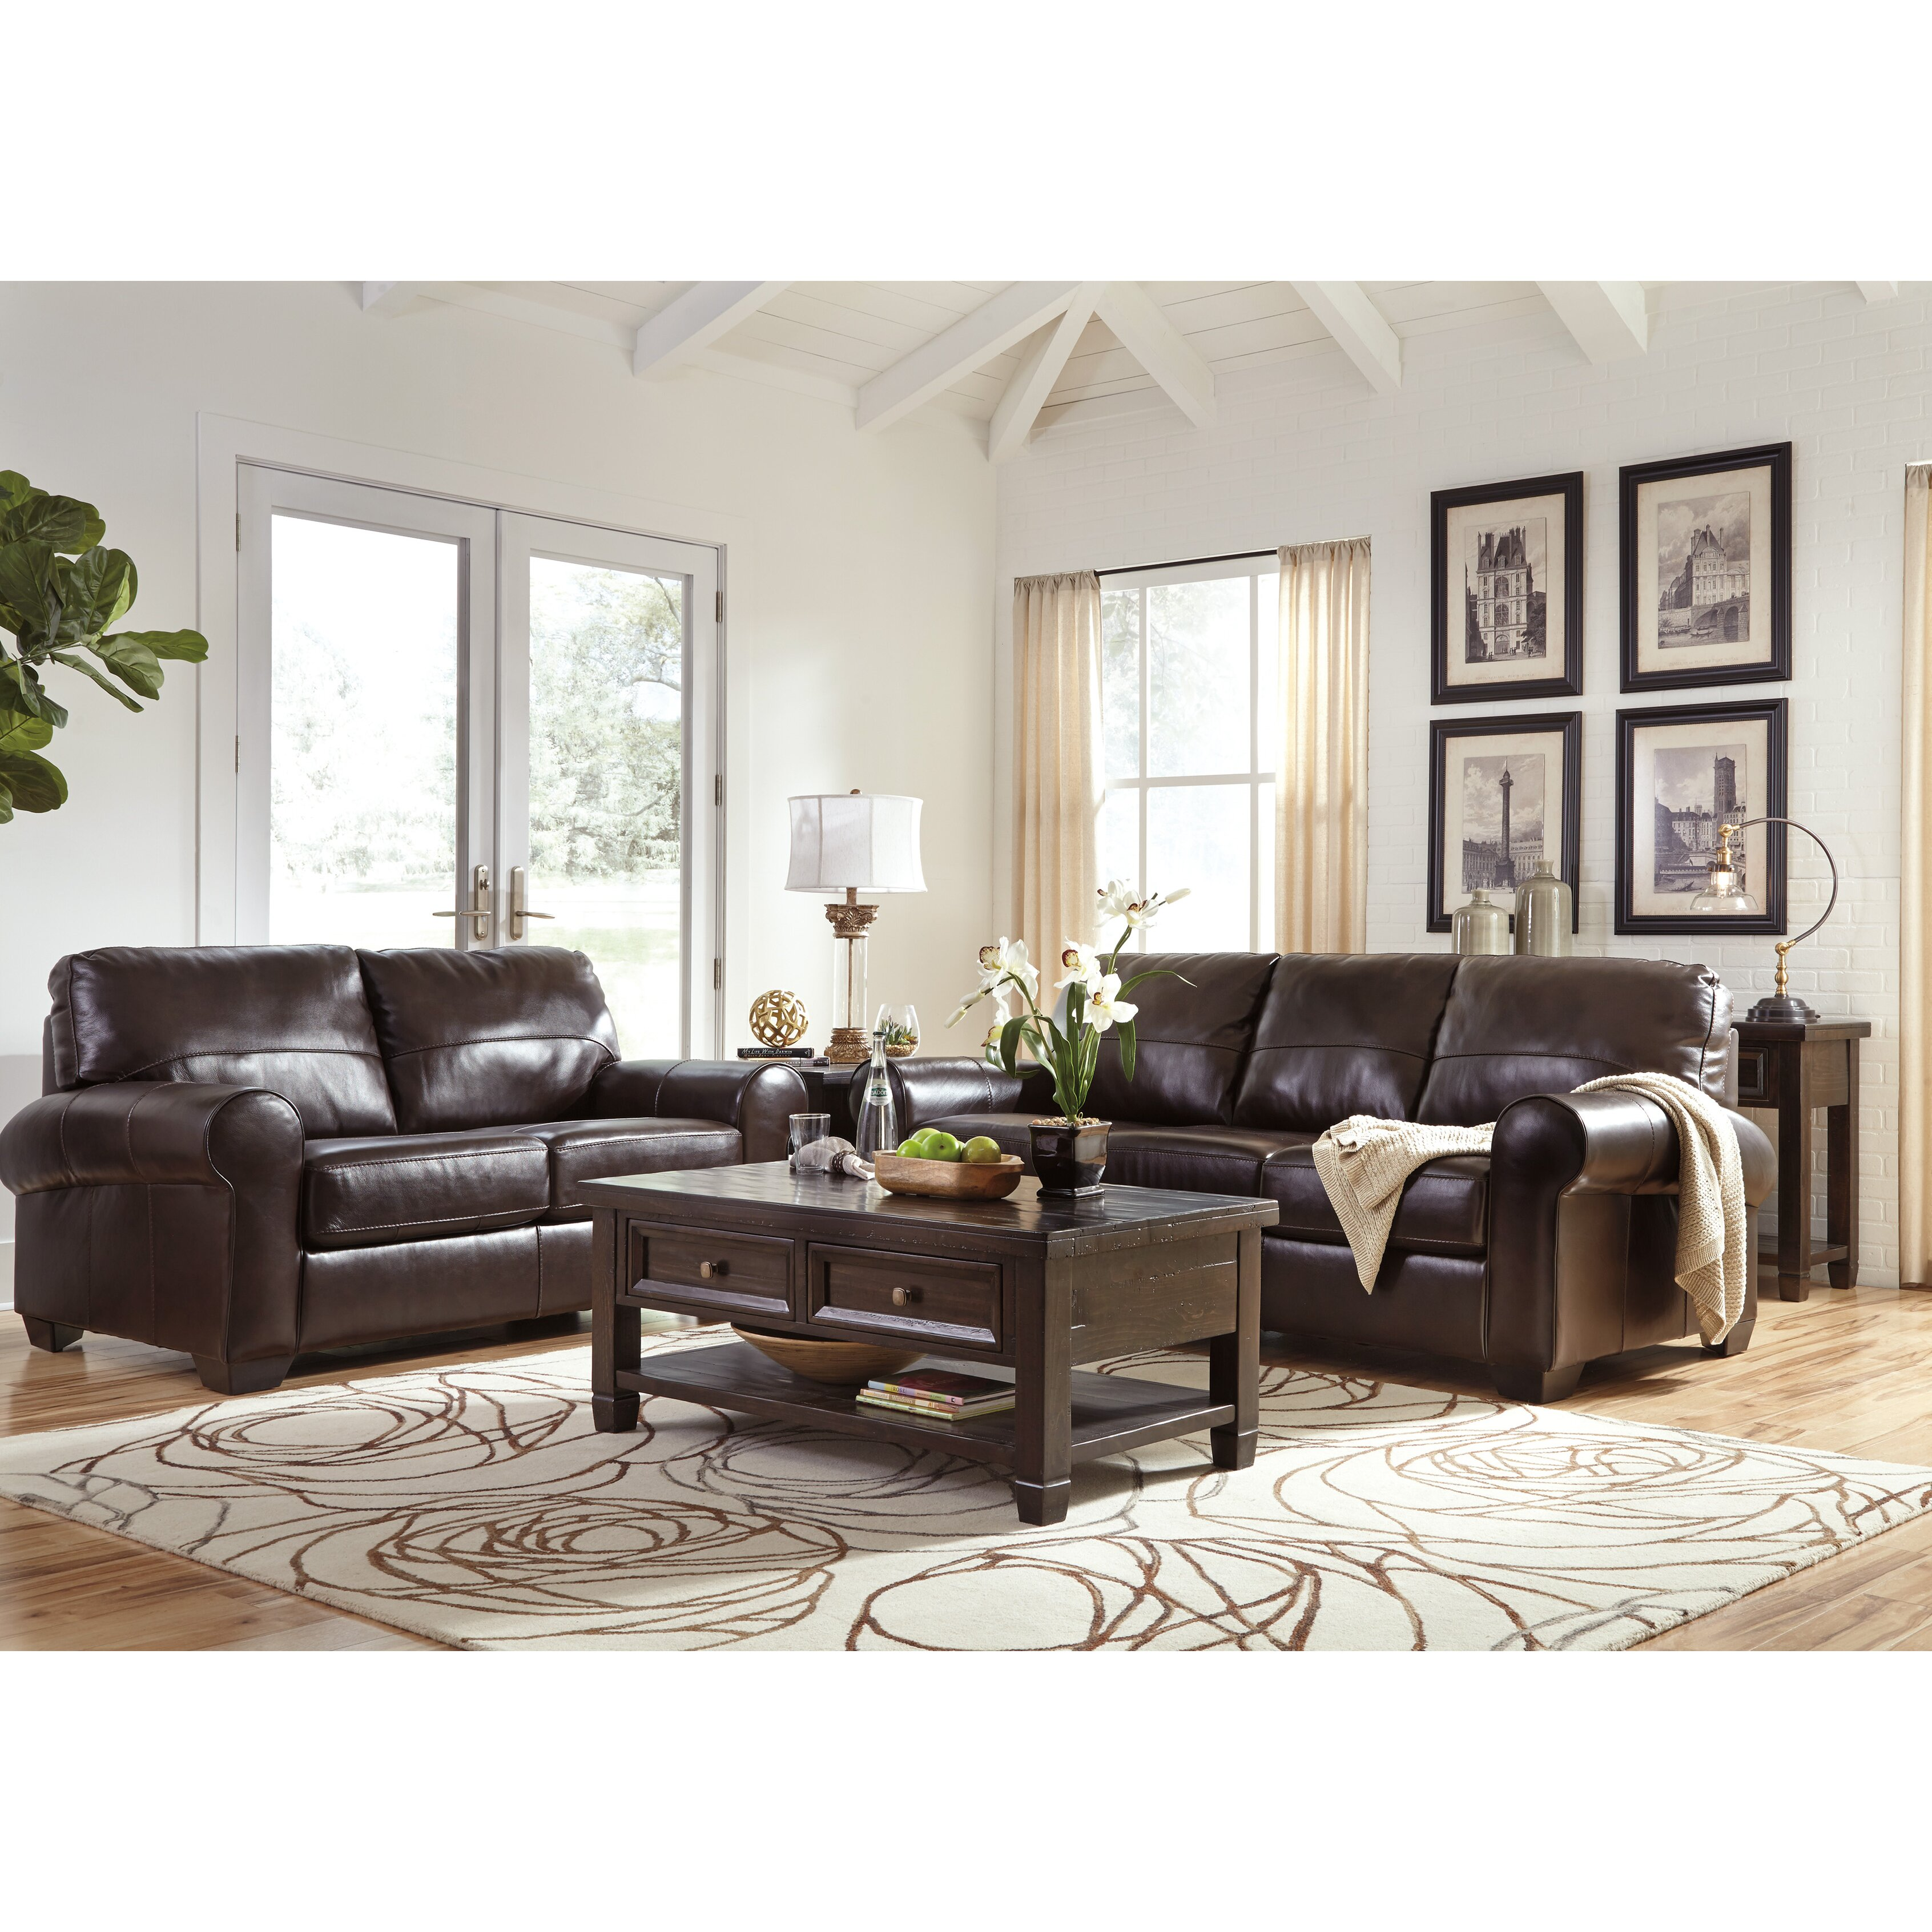 Wayfair Living Room Furniture Darby Home Co Bacall Living Room Collection Reviews Wayfair